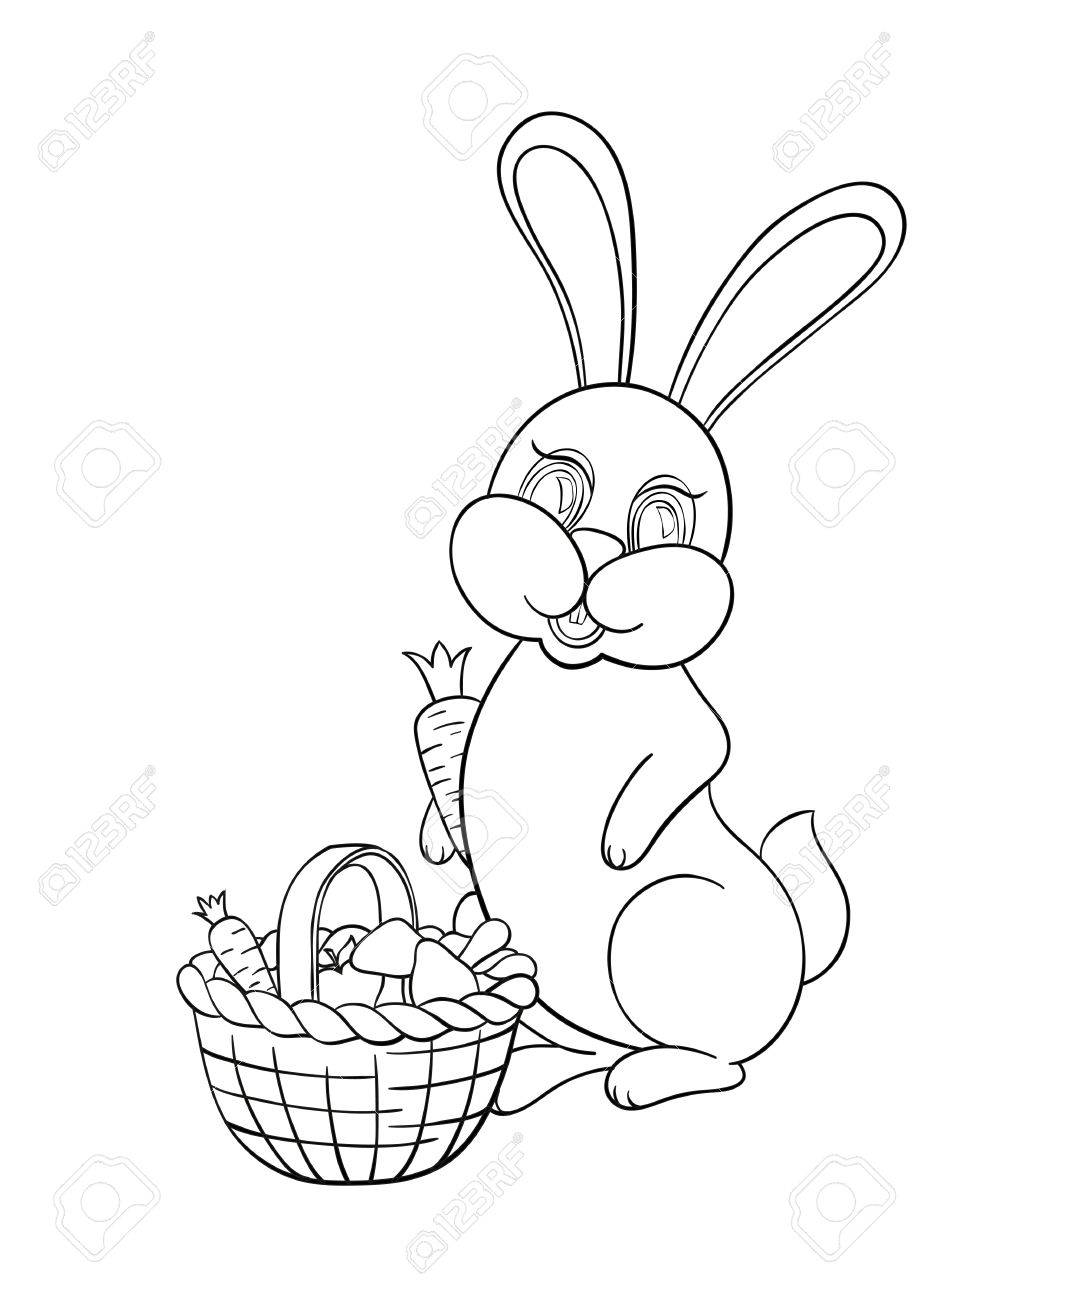 1083x1300 Vector Illustration Coloring For Kids With Rabbit To Collect